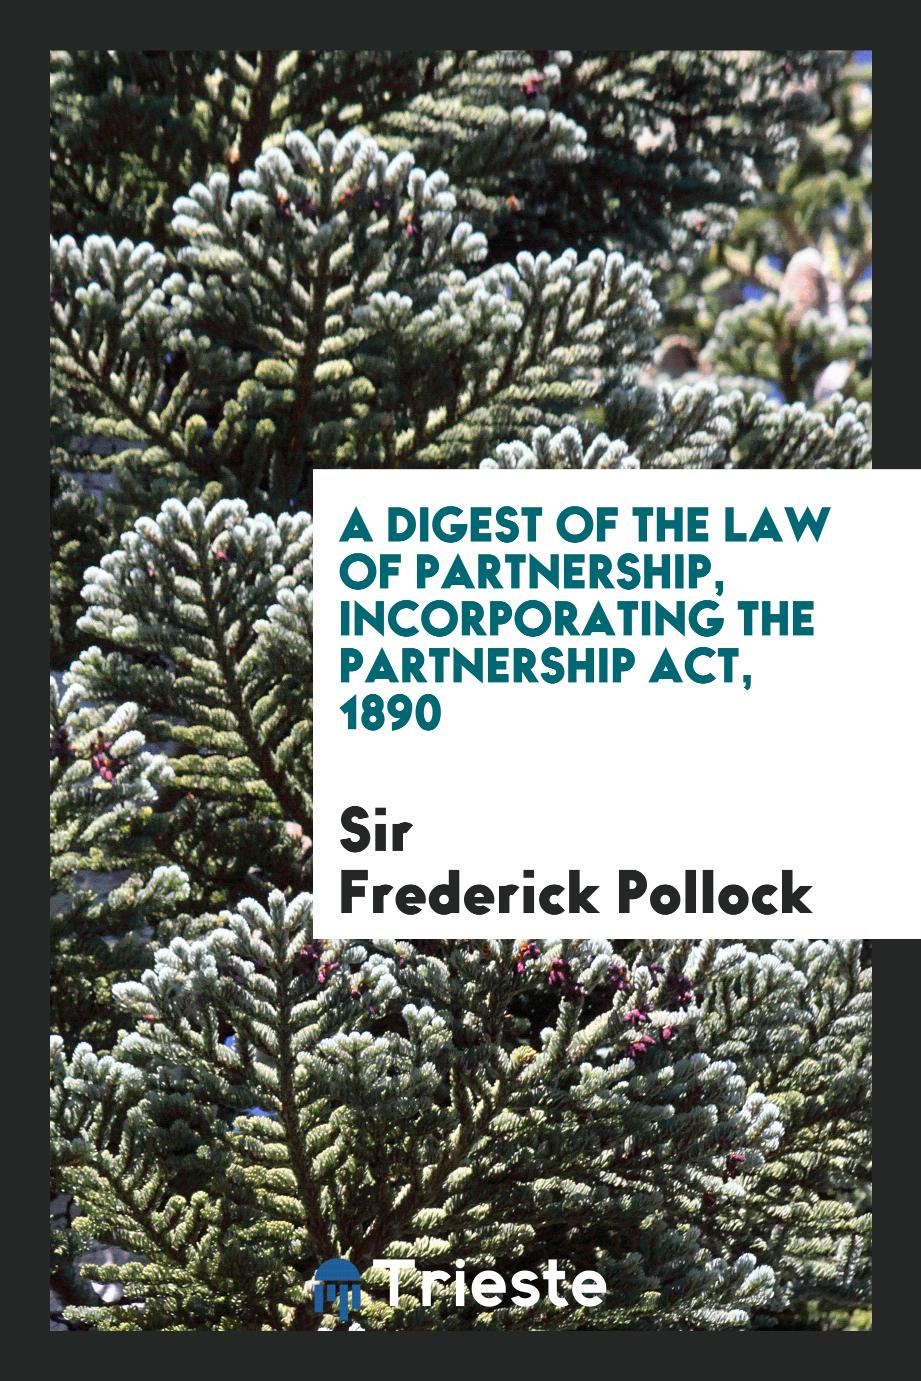 A Digest of the Law of Partnership, Incorporating the Partnership Act, 1890